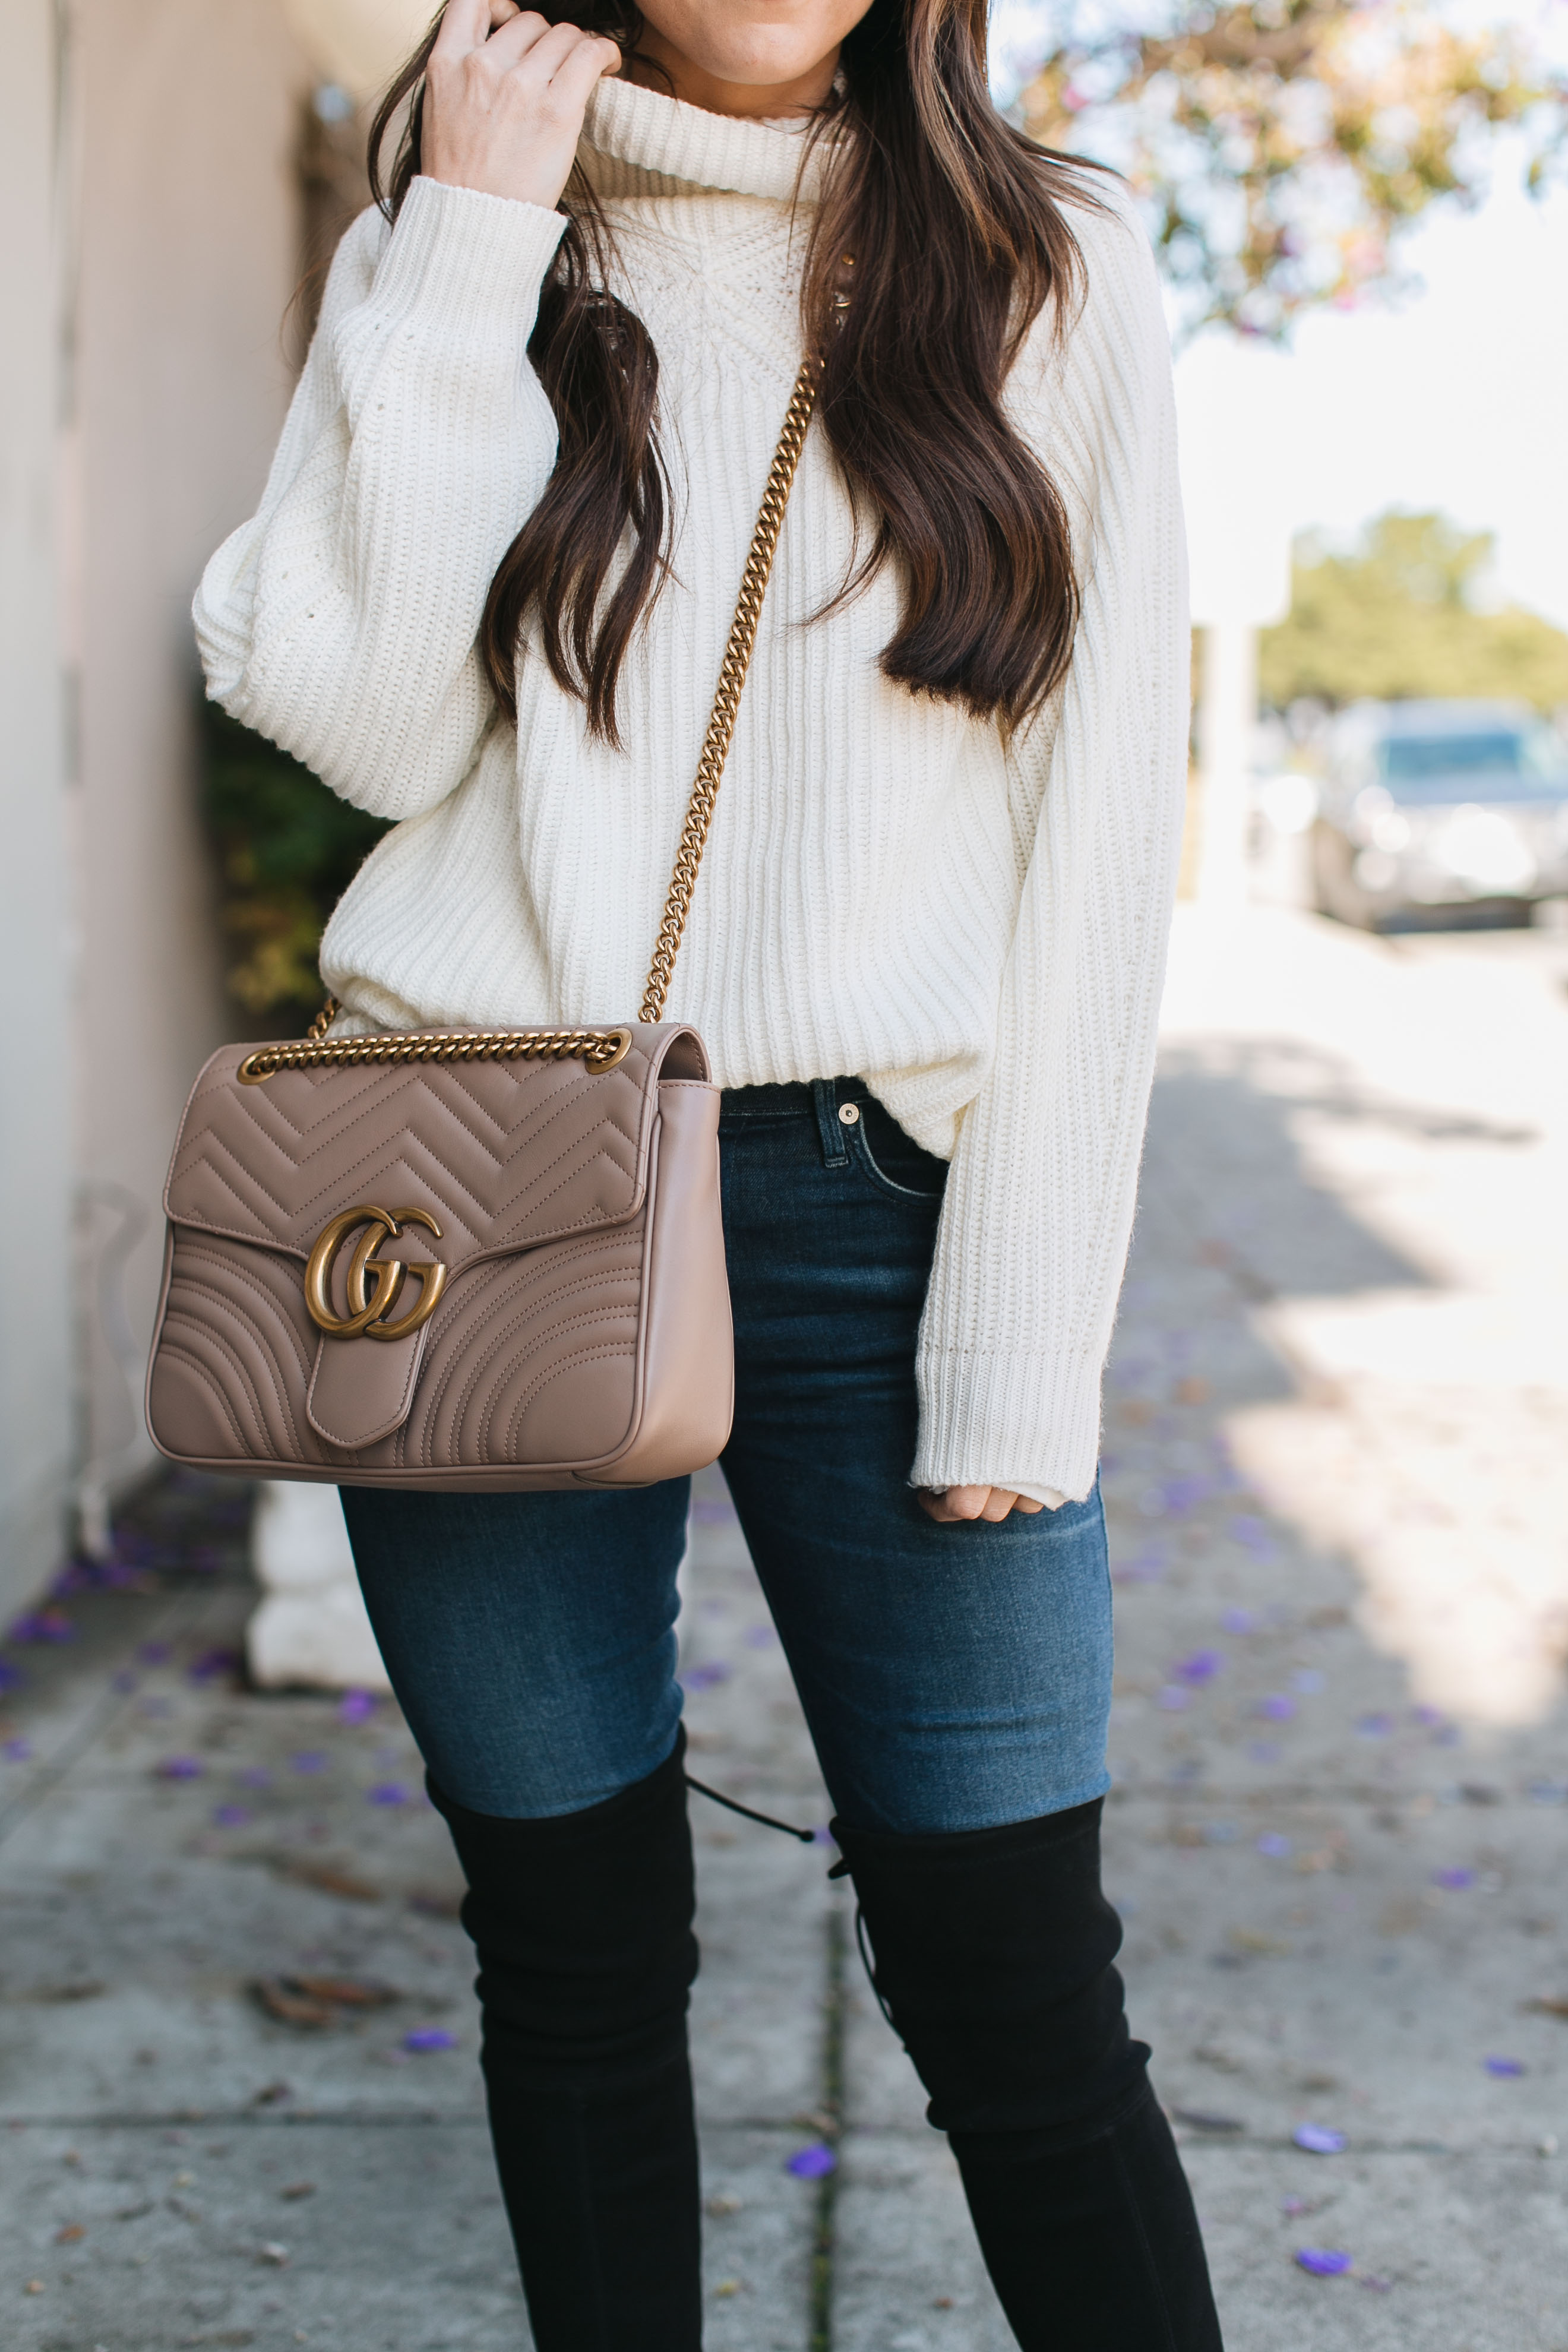 fashion blogger daryl-ann denner shares tips on packing for a weekend getaway and wears a topshop sweater and gucci marmont bag